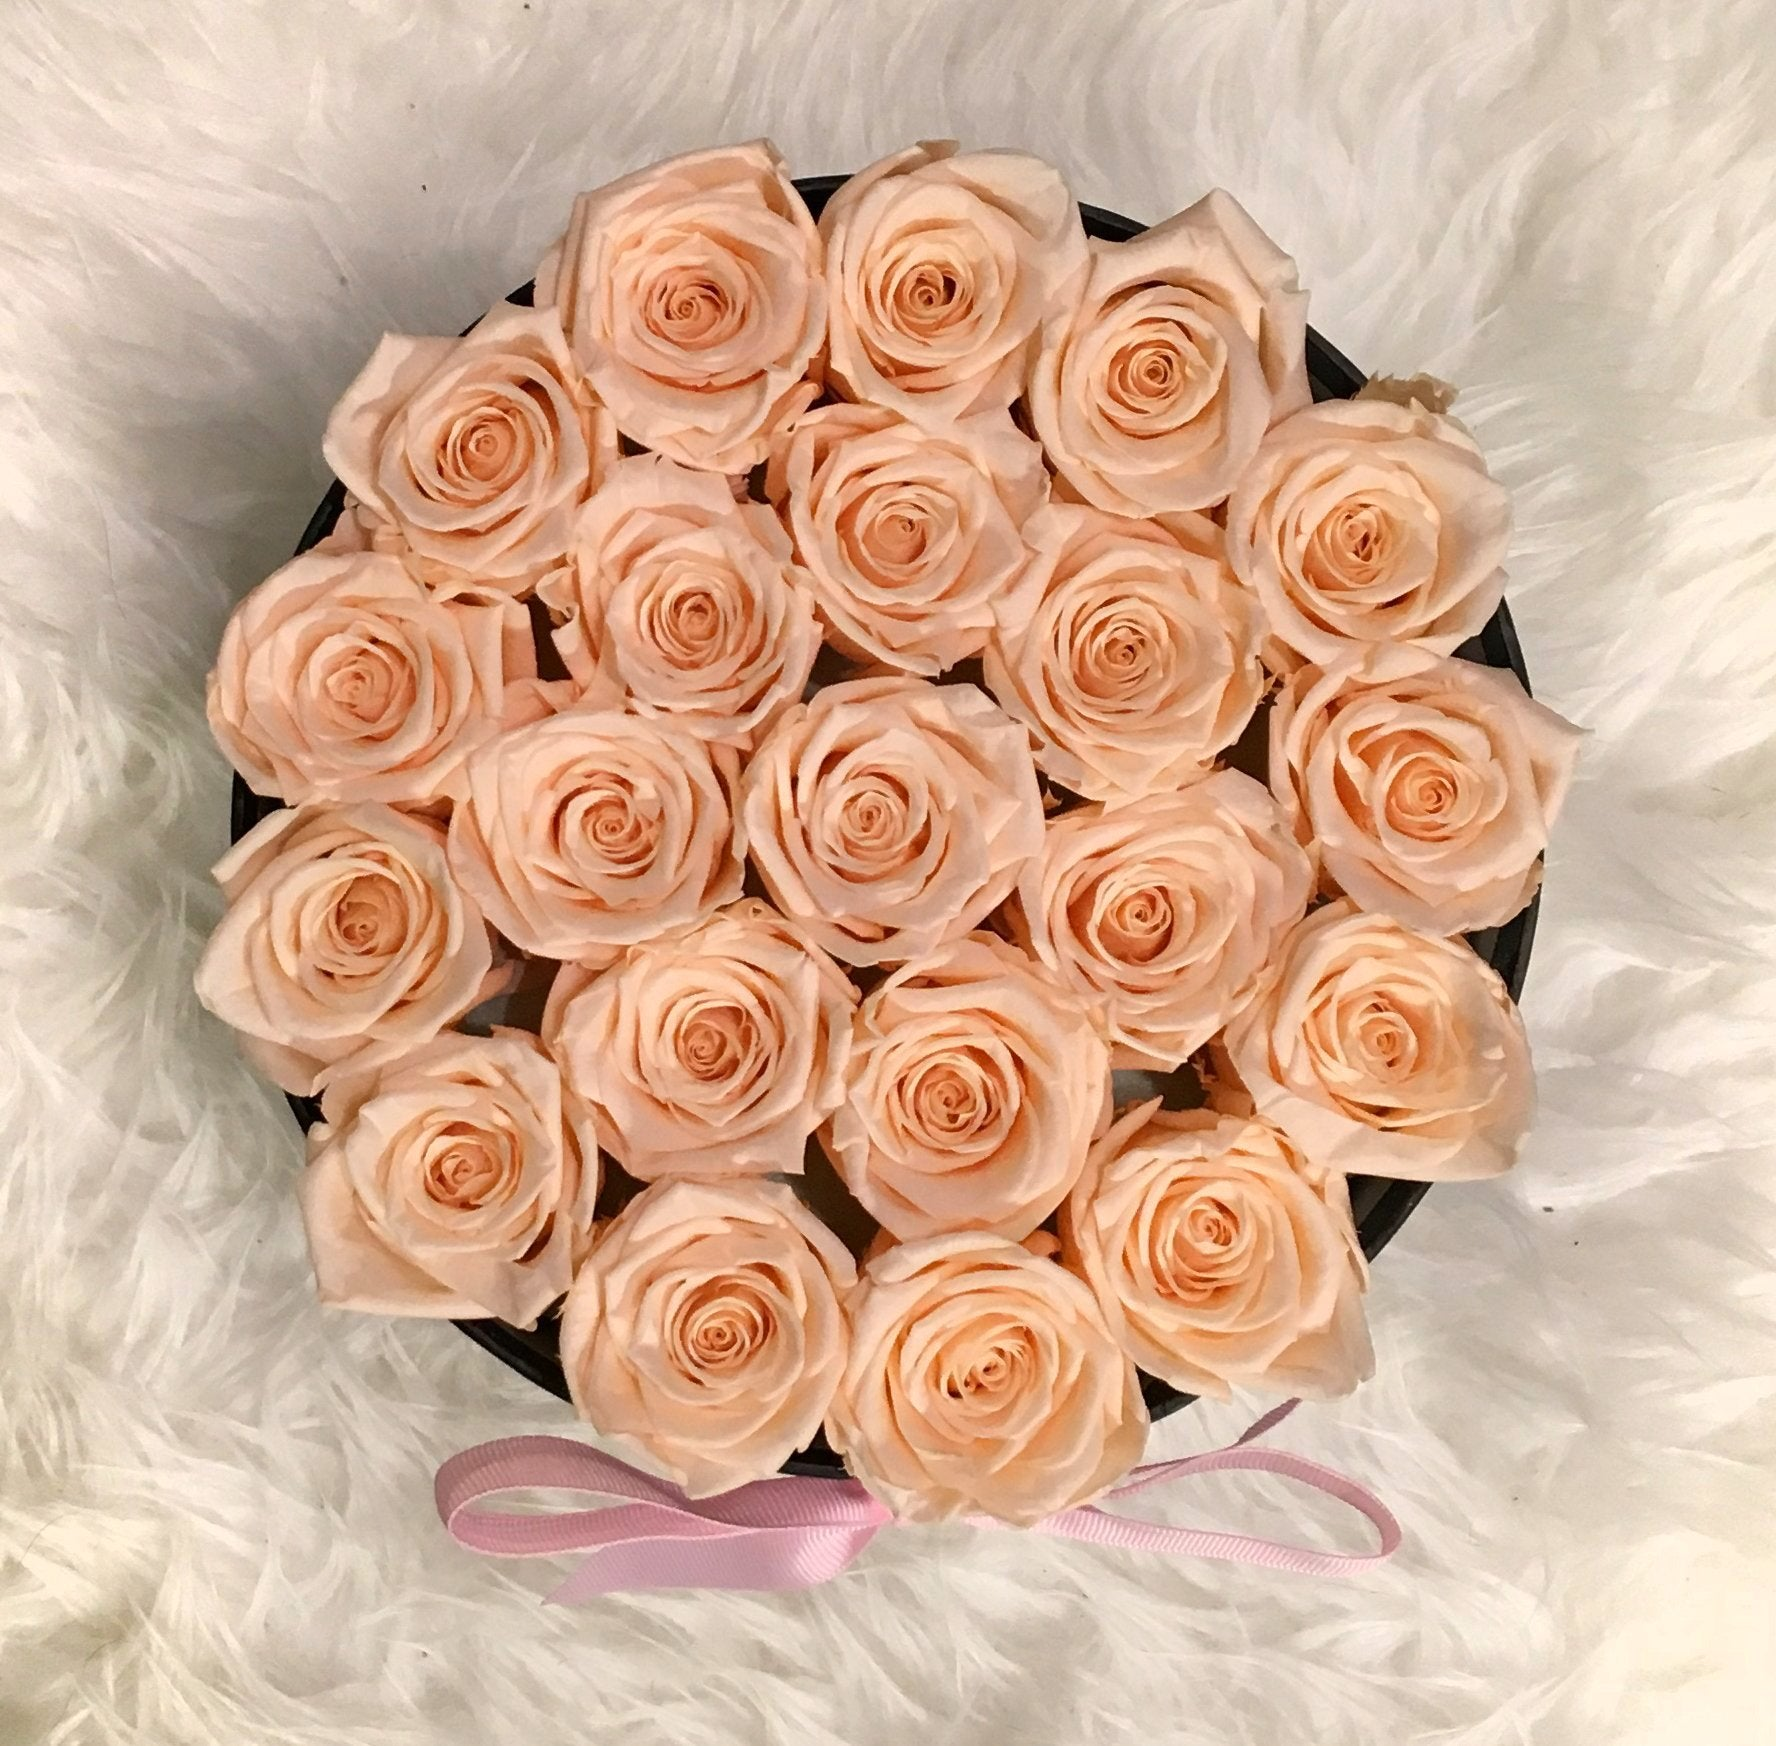 19-23 Eternity Roses. Real roses preserved naturally with a proprietary solution to keep them stunningly beautiful for a year or more. No water or direct sunlight needed.